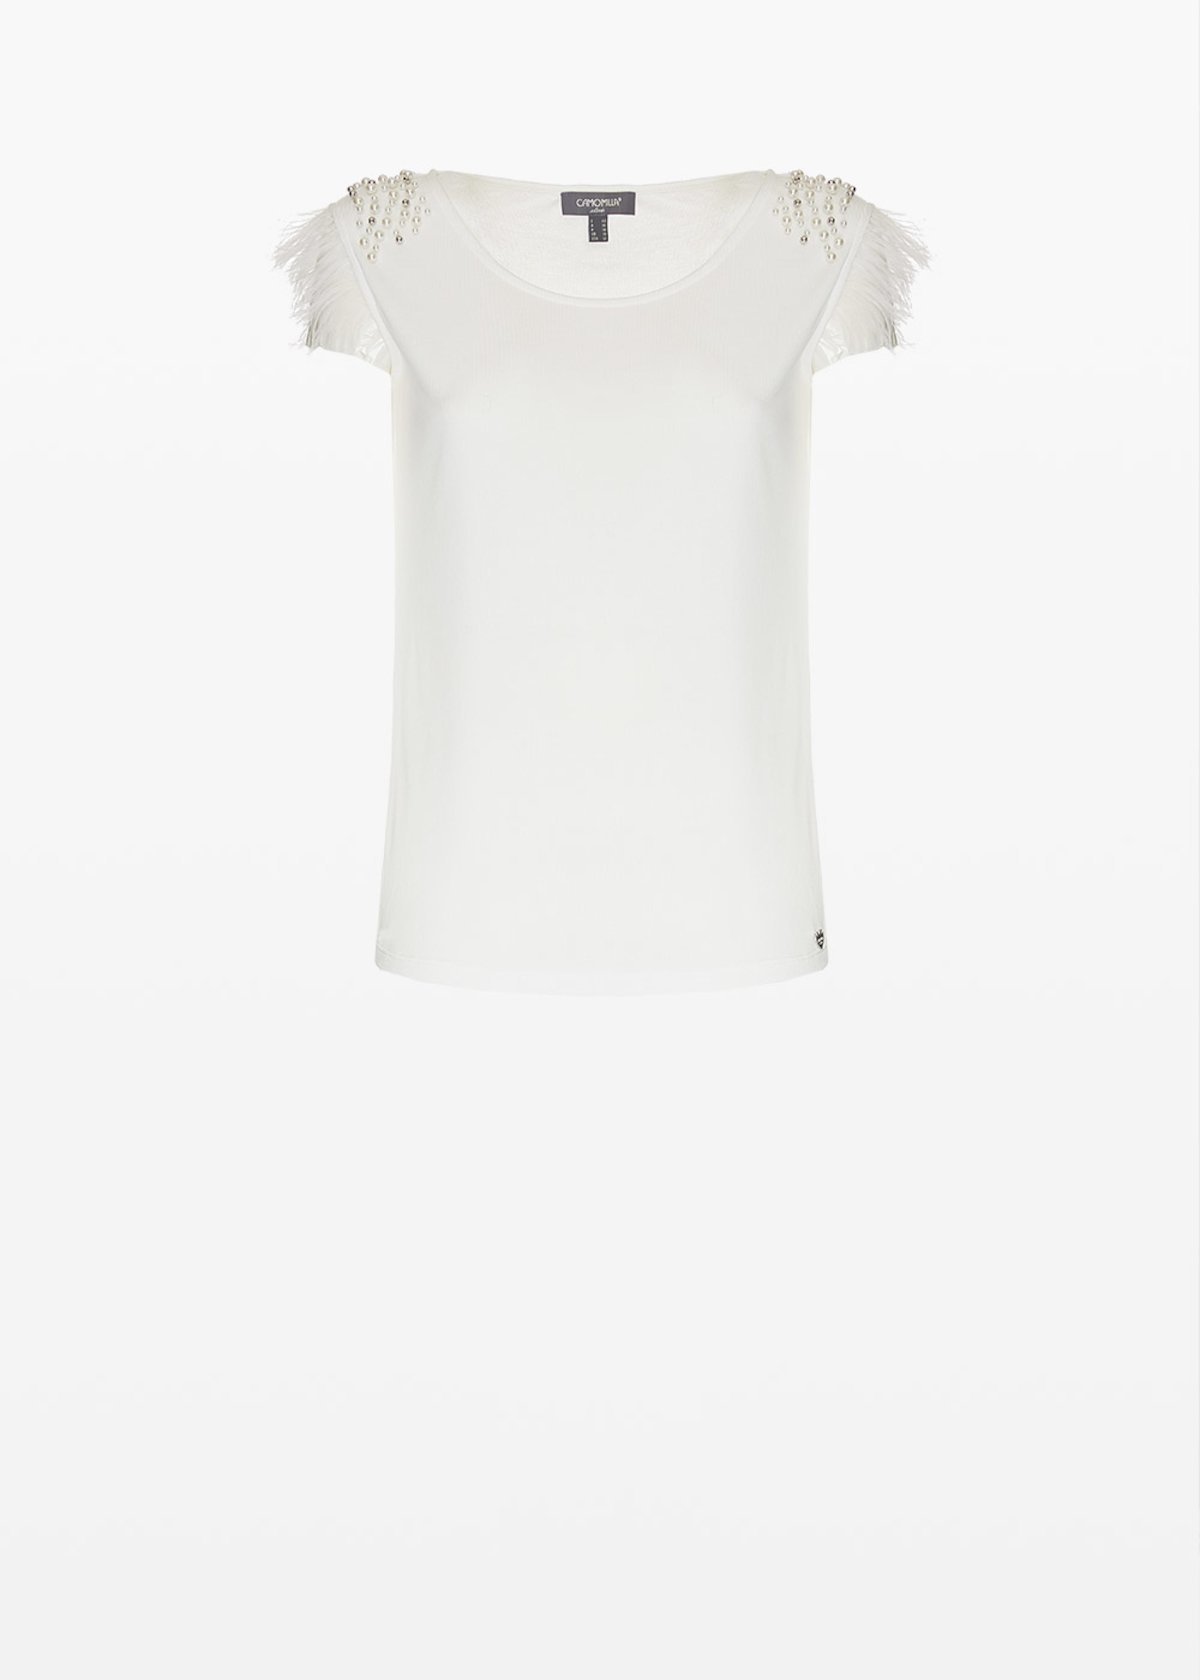 Tamir jersey top with pearls and feathers detail - White - Woman